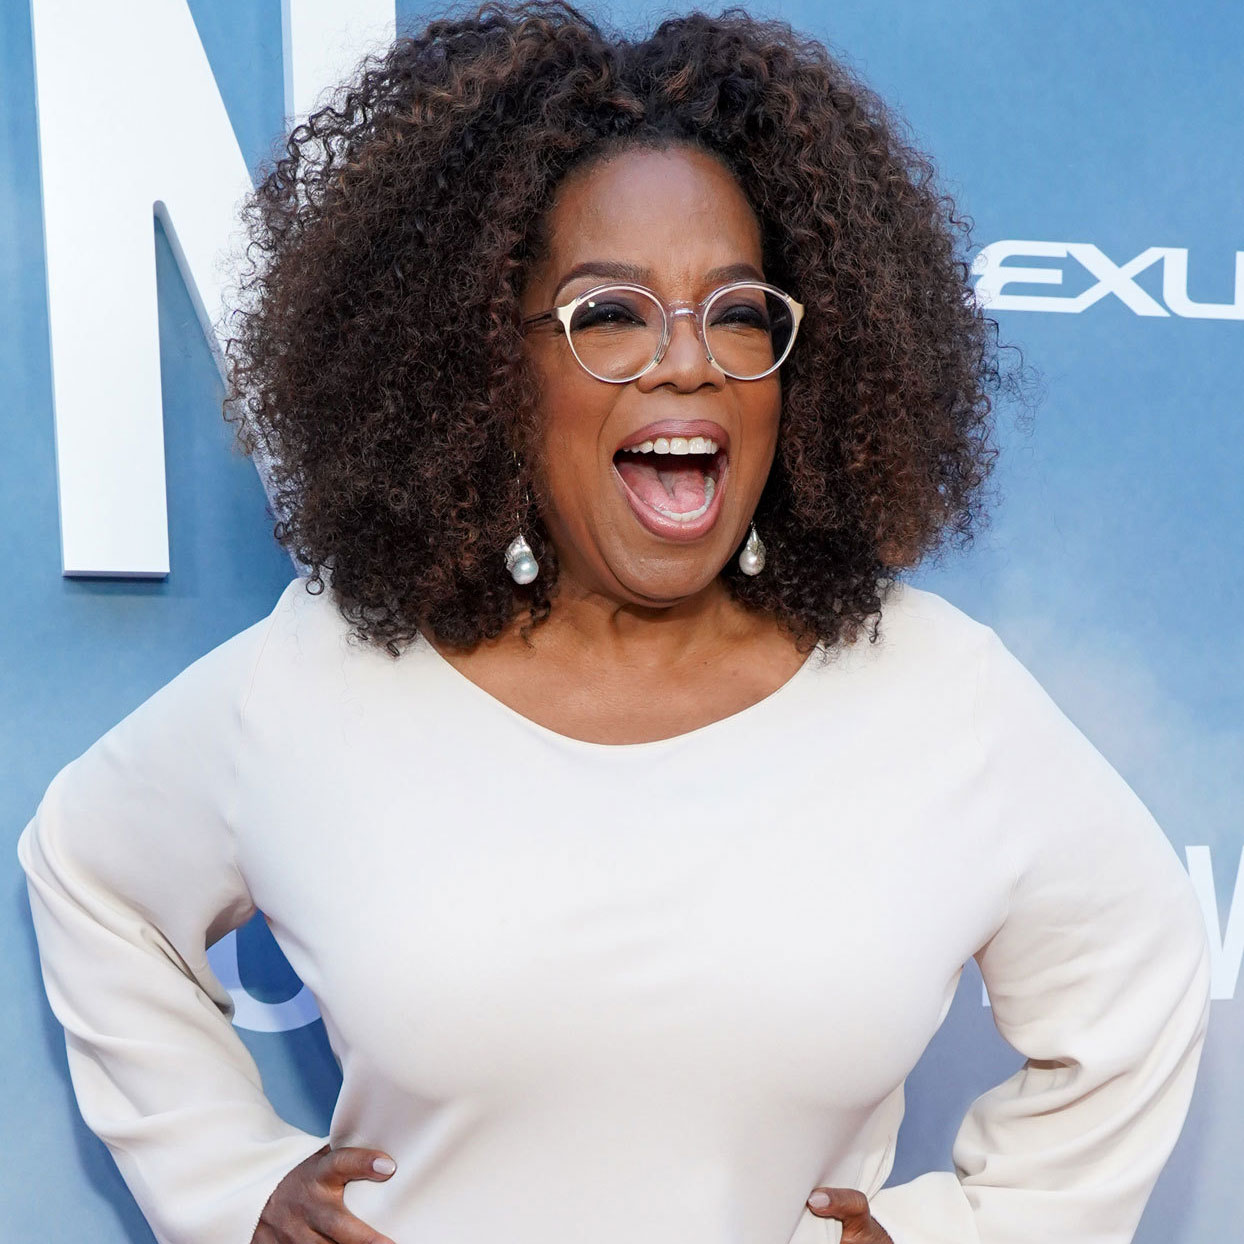 Oprah Is Taking on a 30-Day Plant-Based Diet Challenge—and It Actually Seems Pretty Easy